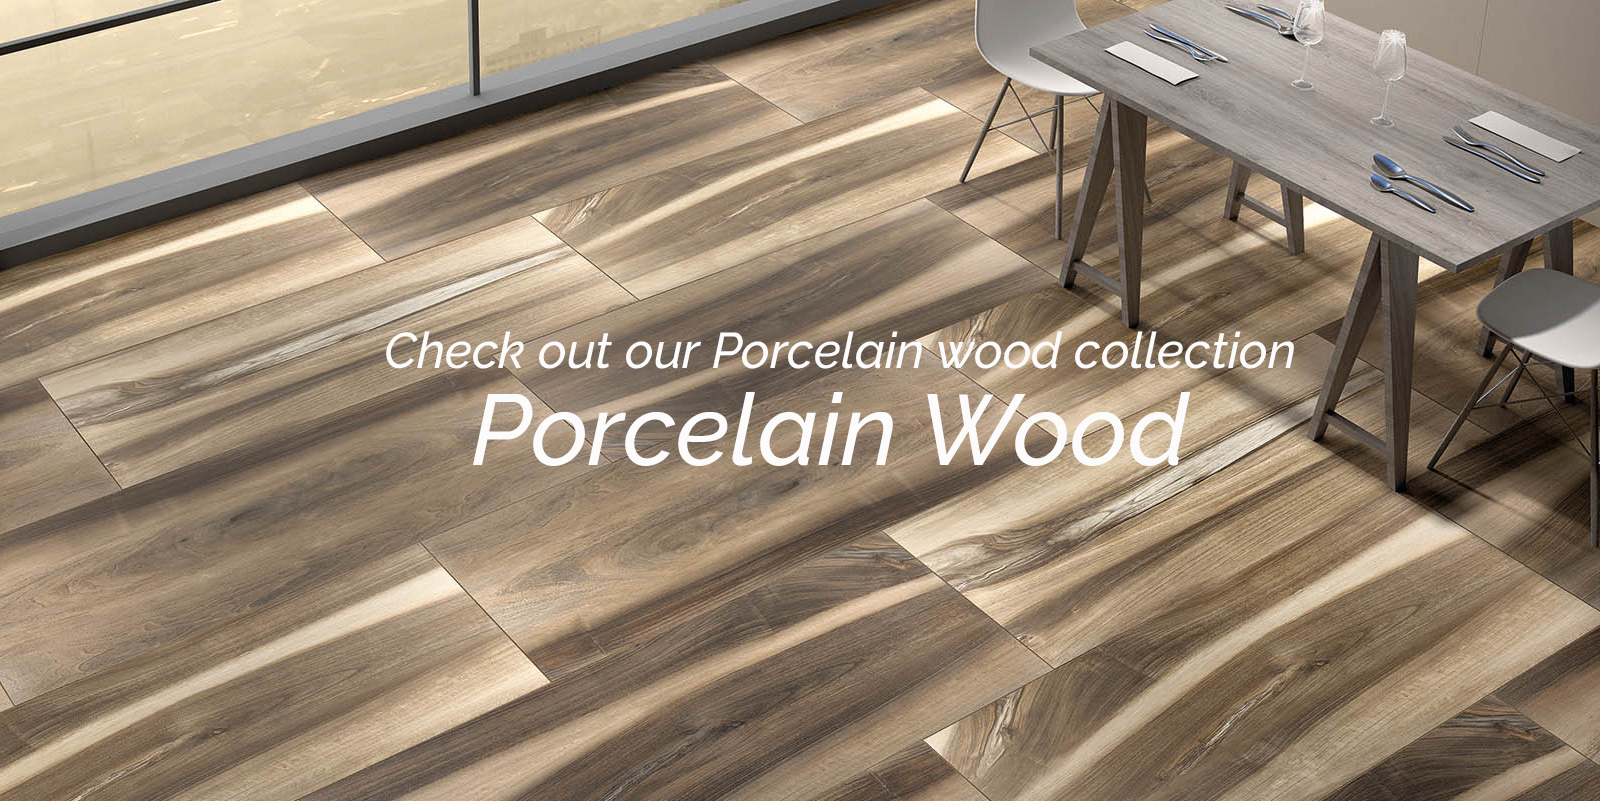 Astounding America Fort Myers Hours America Discount Code Tile Outlets Porcelain Wood Effect Tile Ng Kutahya 3 13397 Tile Outlets houzz-02 Tile Outlets Of America